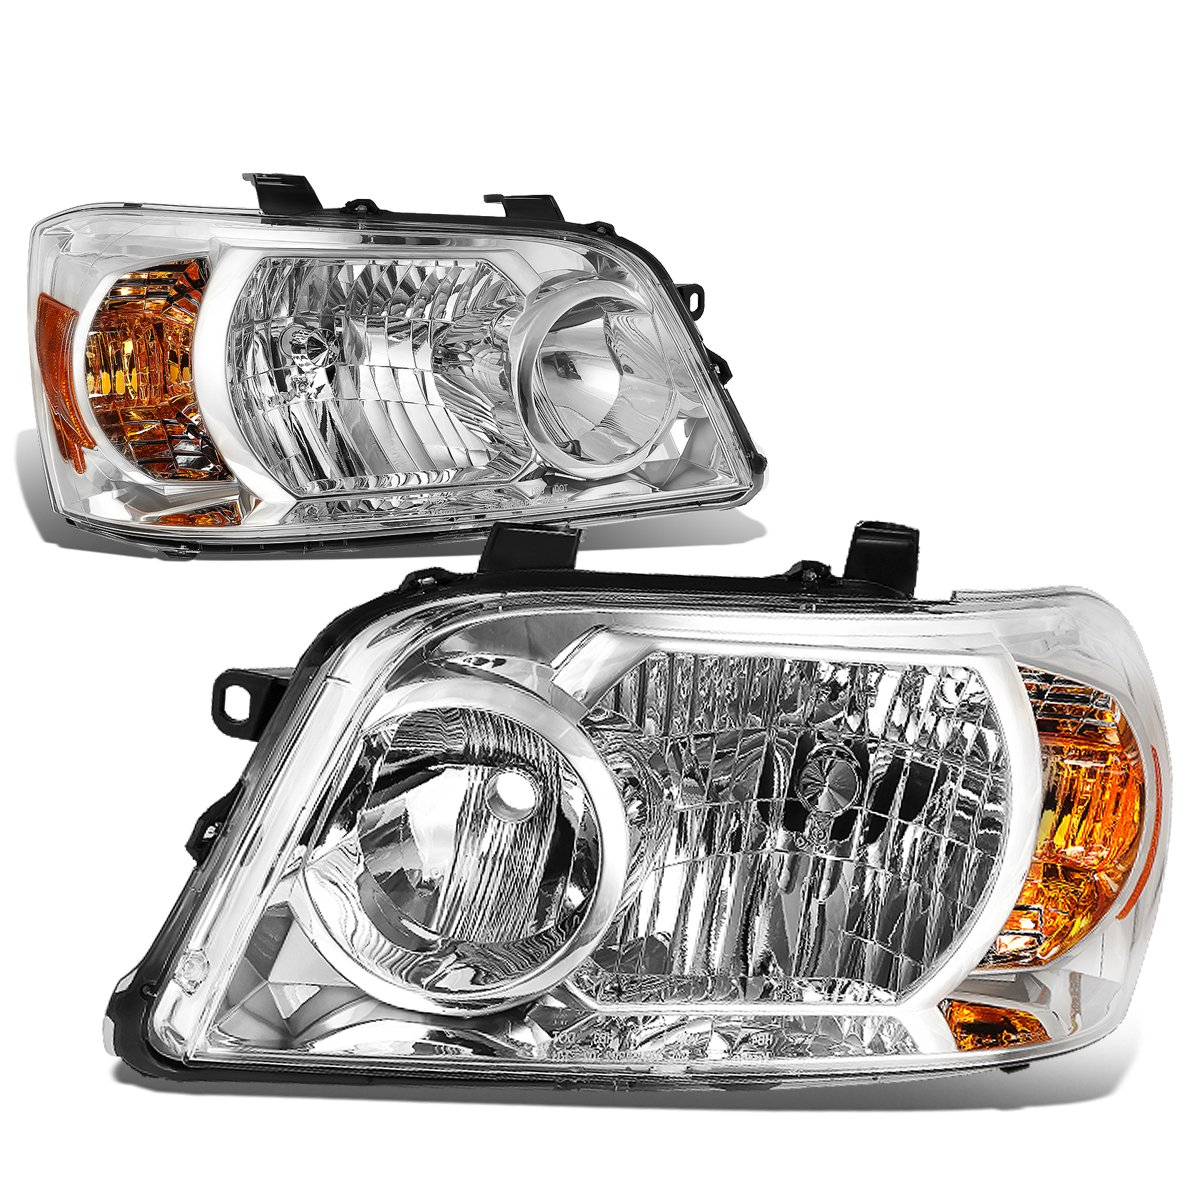 DNA MOTORING HL-OH-097-CH-AM Headlight Assembly Driver And Passenger Side